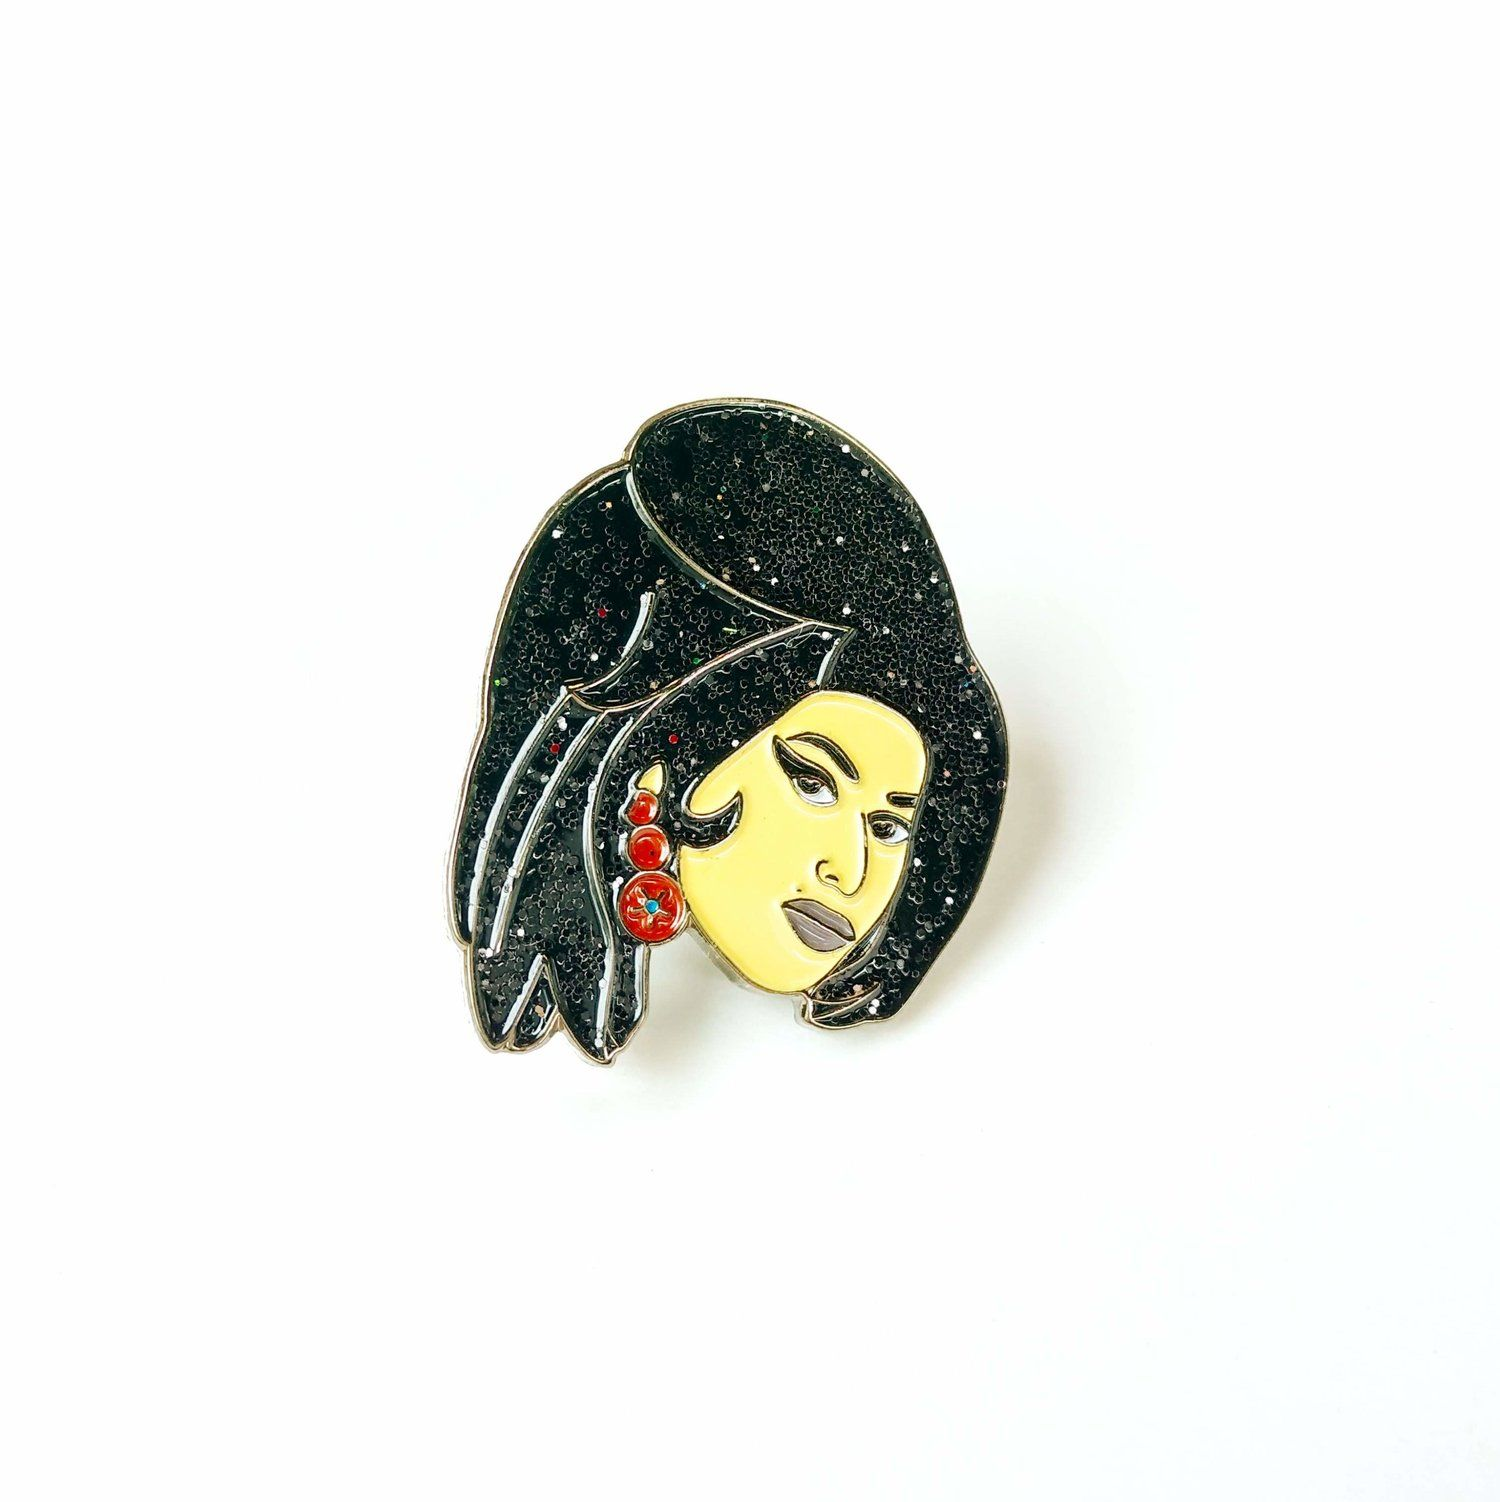 Embroidered Amy Winehouse brooch pin